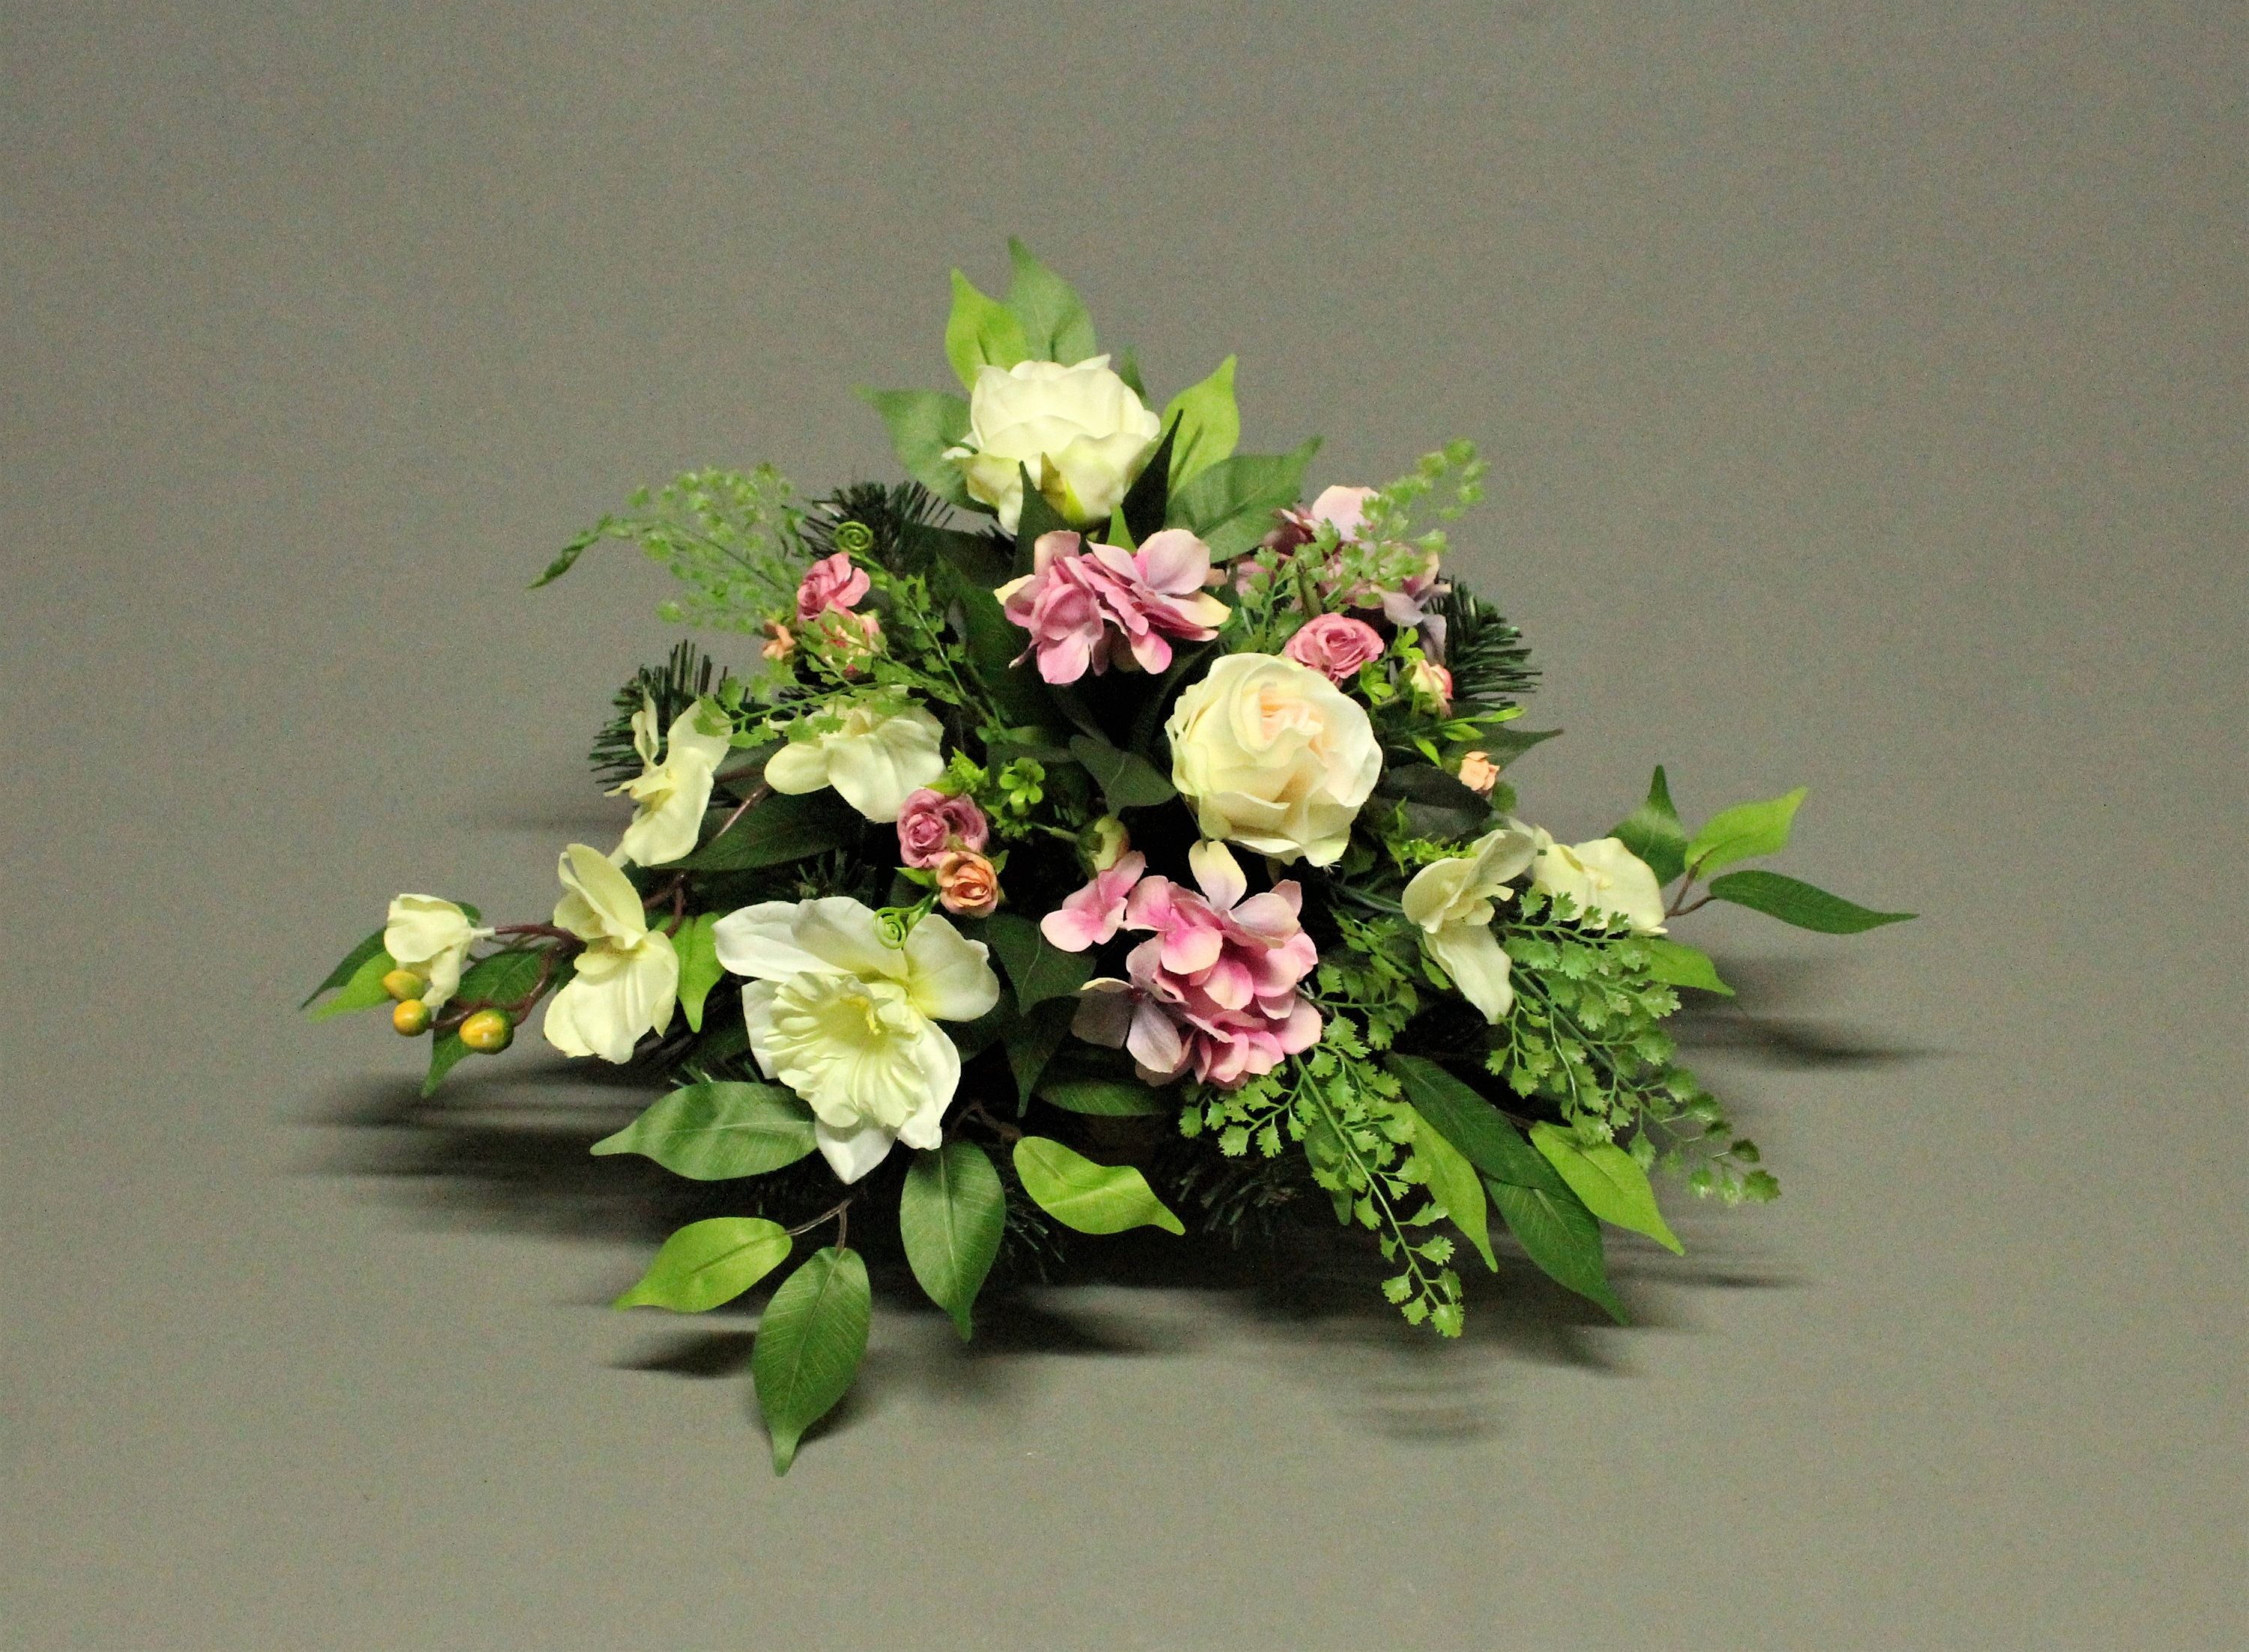 Tombstone Decoration Artificial Flowers Decoration For Monument Tomb For Grave Cemetery Decorations Feast Of The Dead Funeral Decorations In 2020 Artificial Flowers Cemetery Decorations Flowers